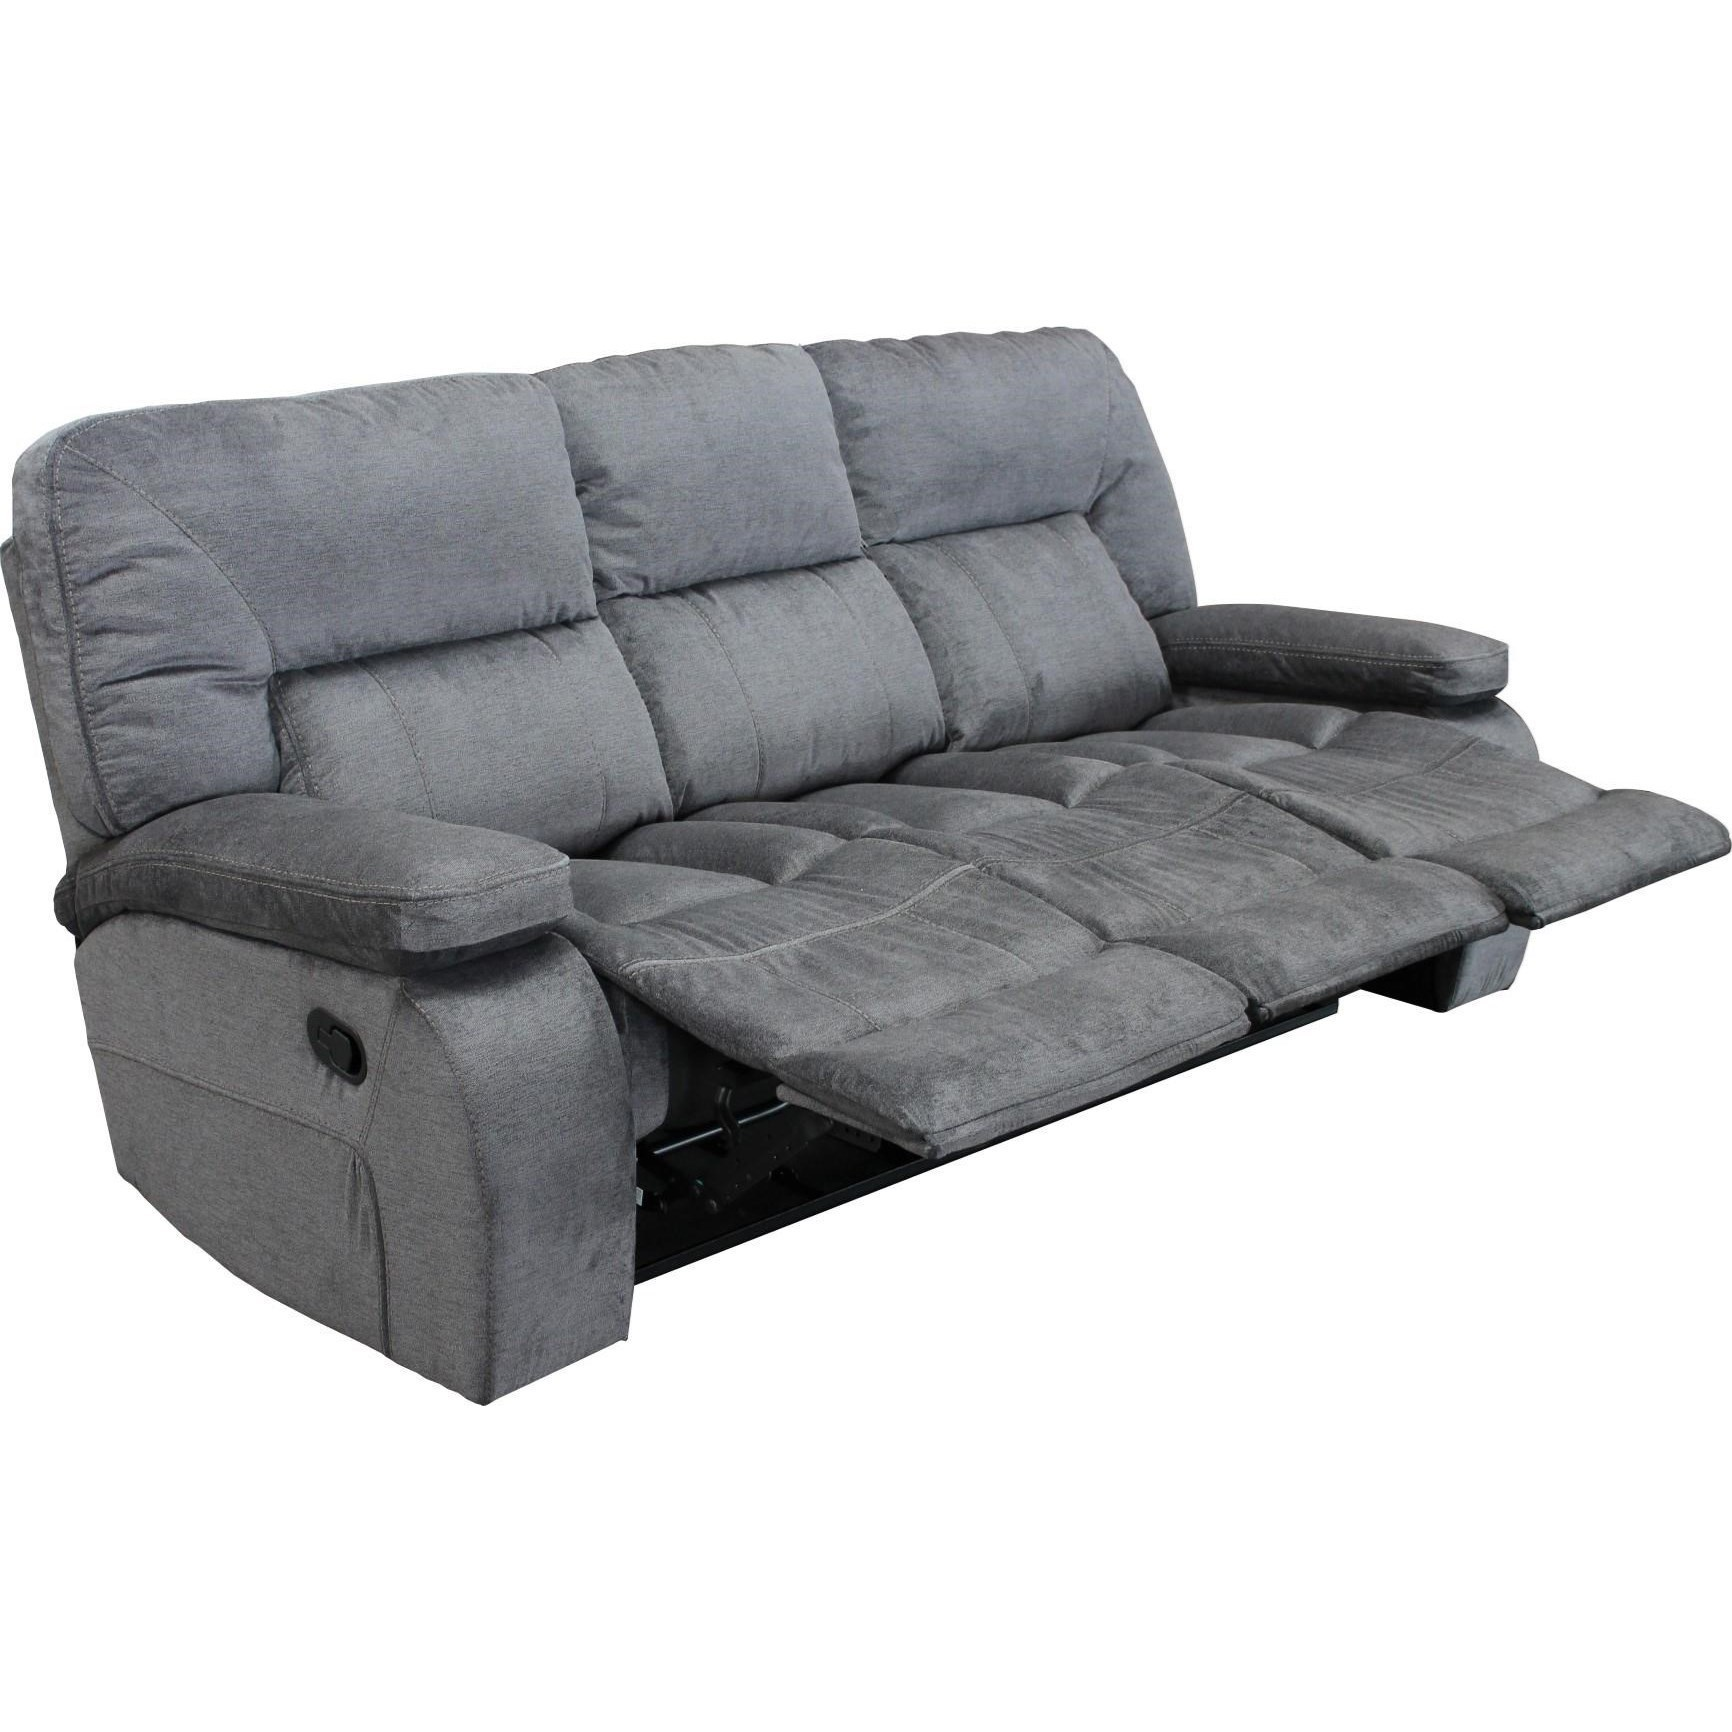 Great Parker Living ChapmanTriple Reclining Sofa ...